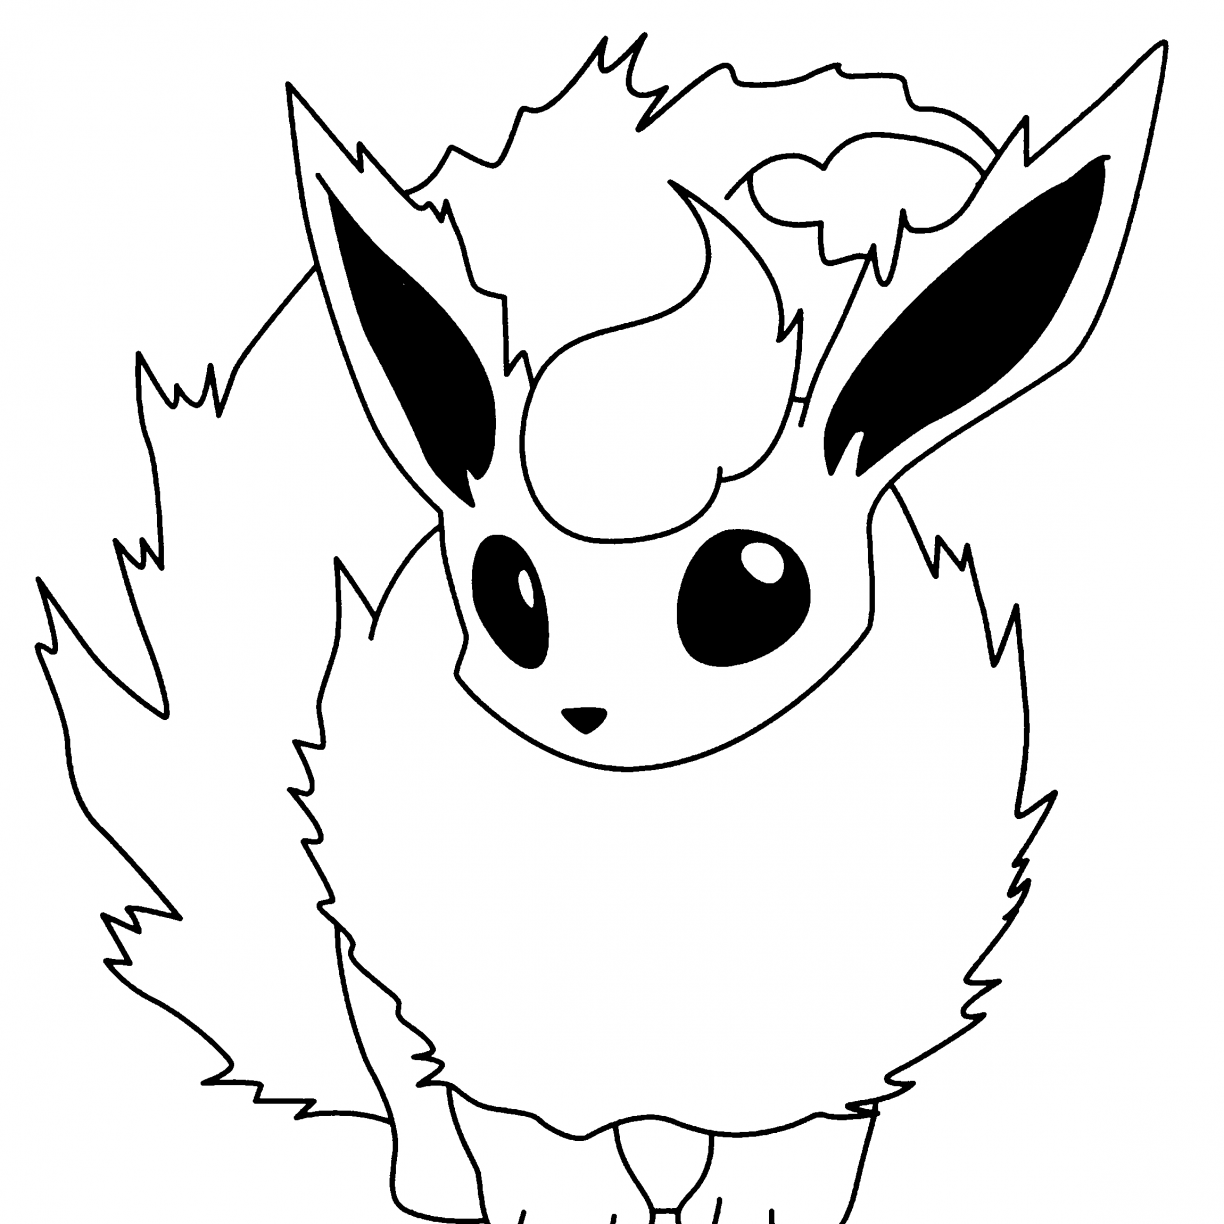 Water Type Pokemon Coloring Pages at GetDrawings com | Free